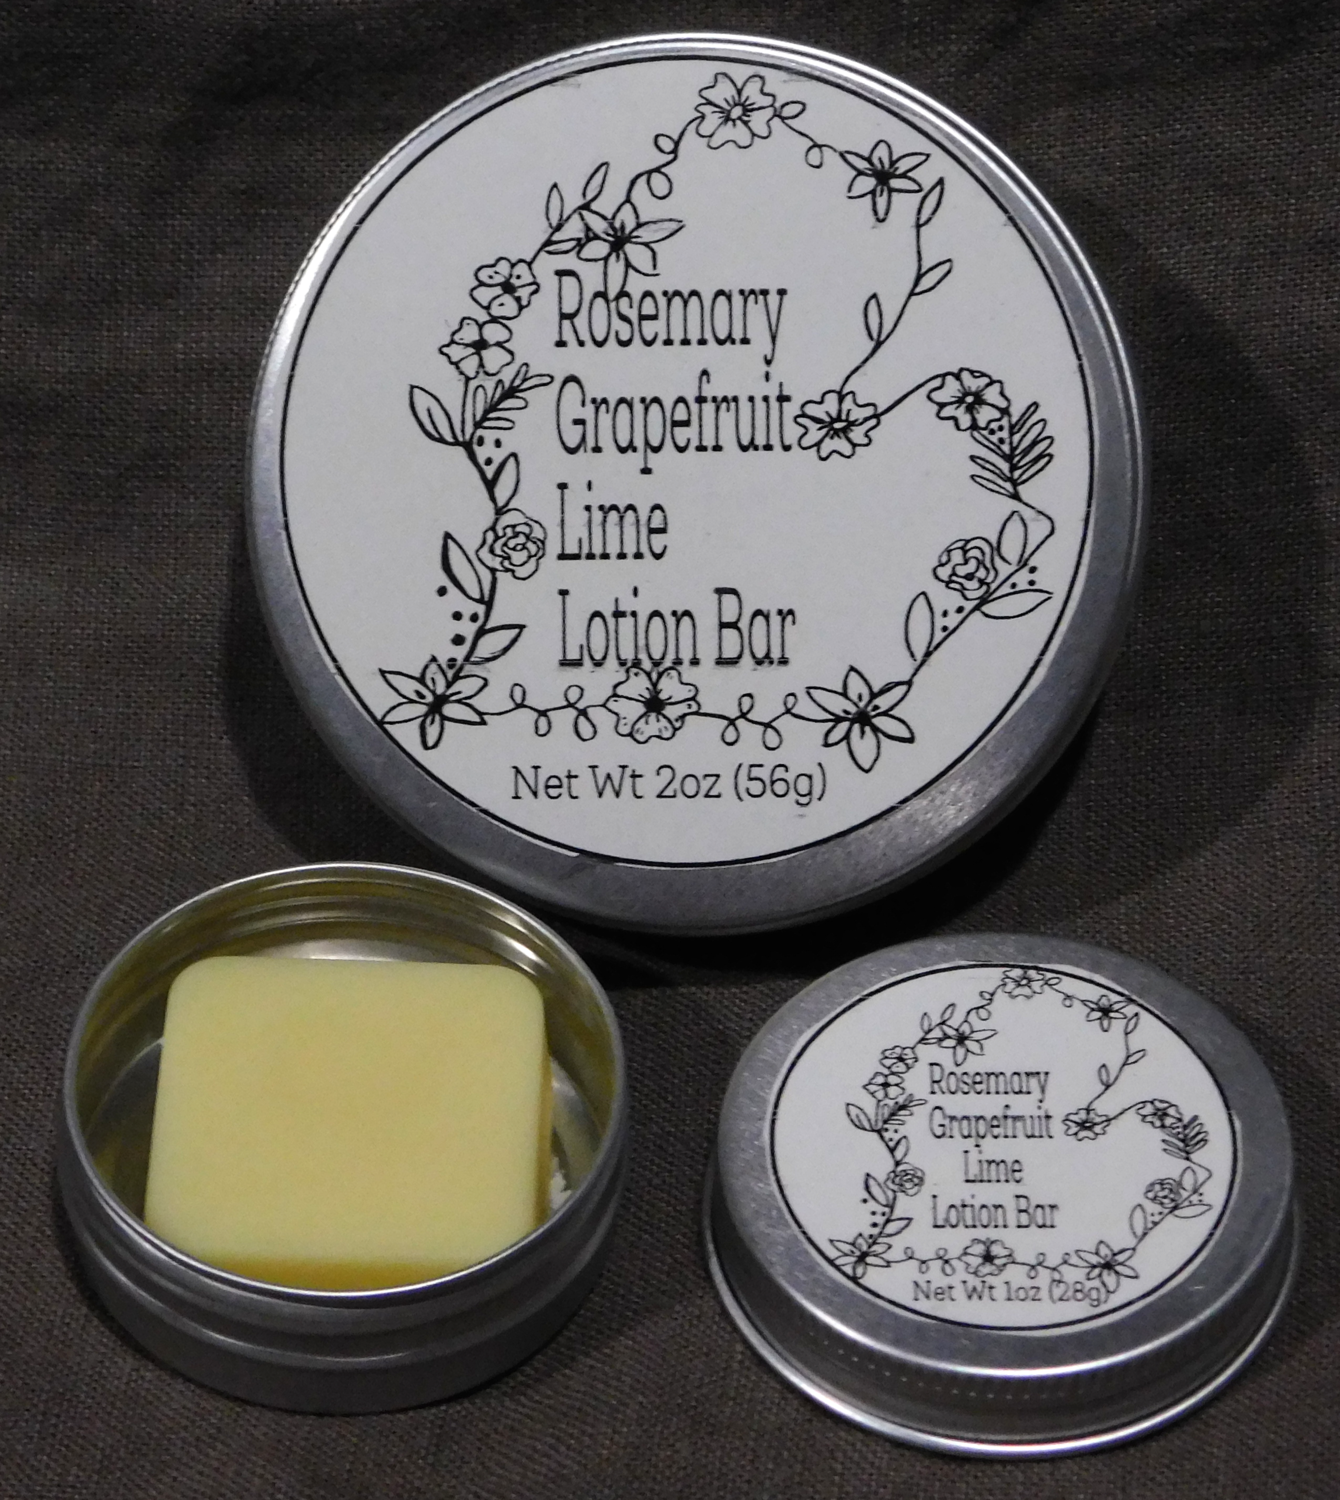 Rosemary Grapefruit Lime Lotion Bars